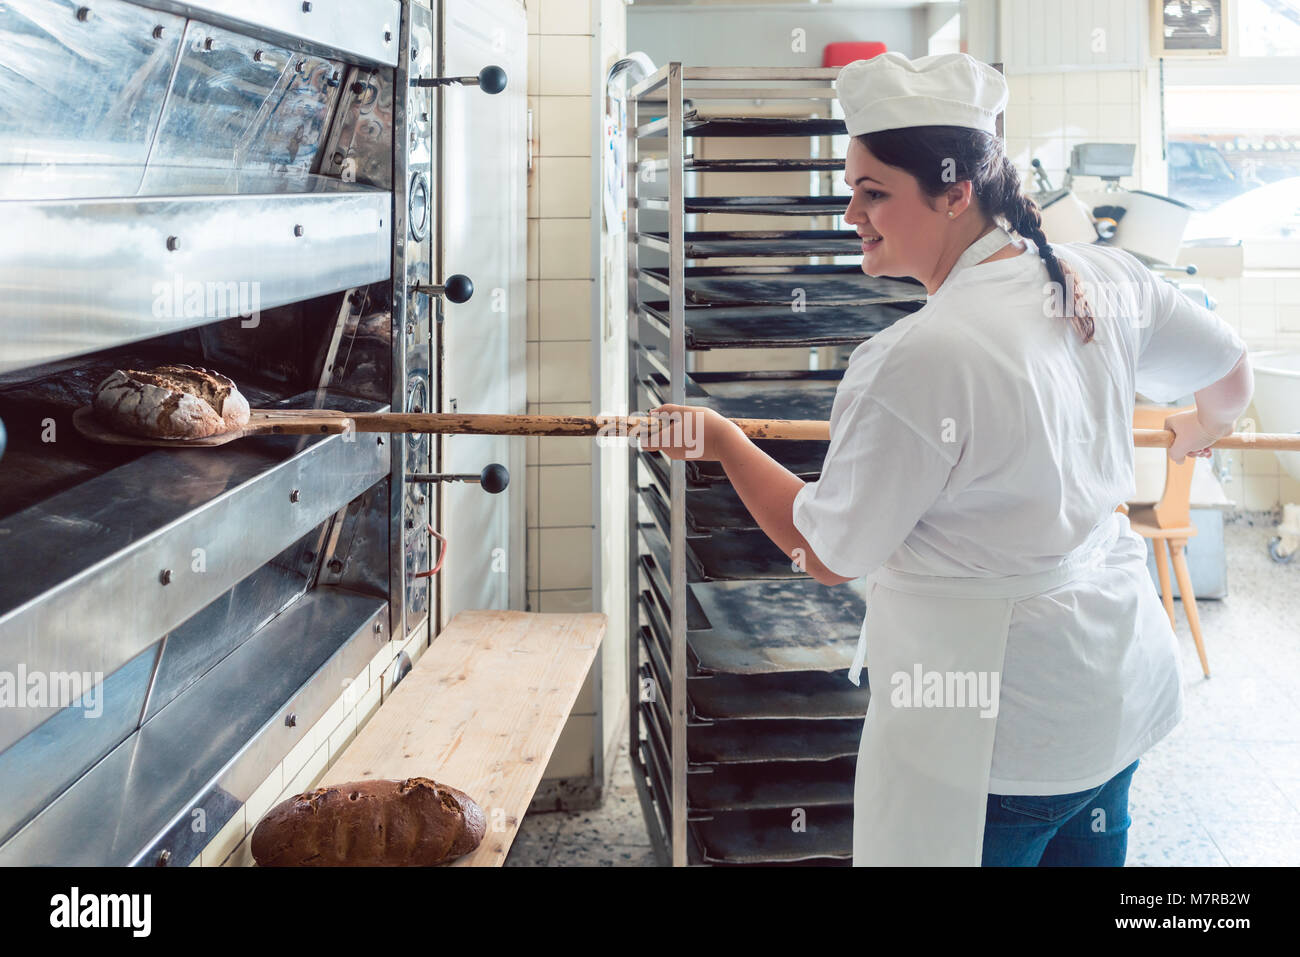 Baker woman getting bread out of bakery oven - Stock Image